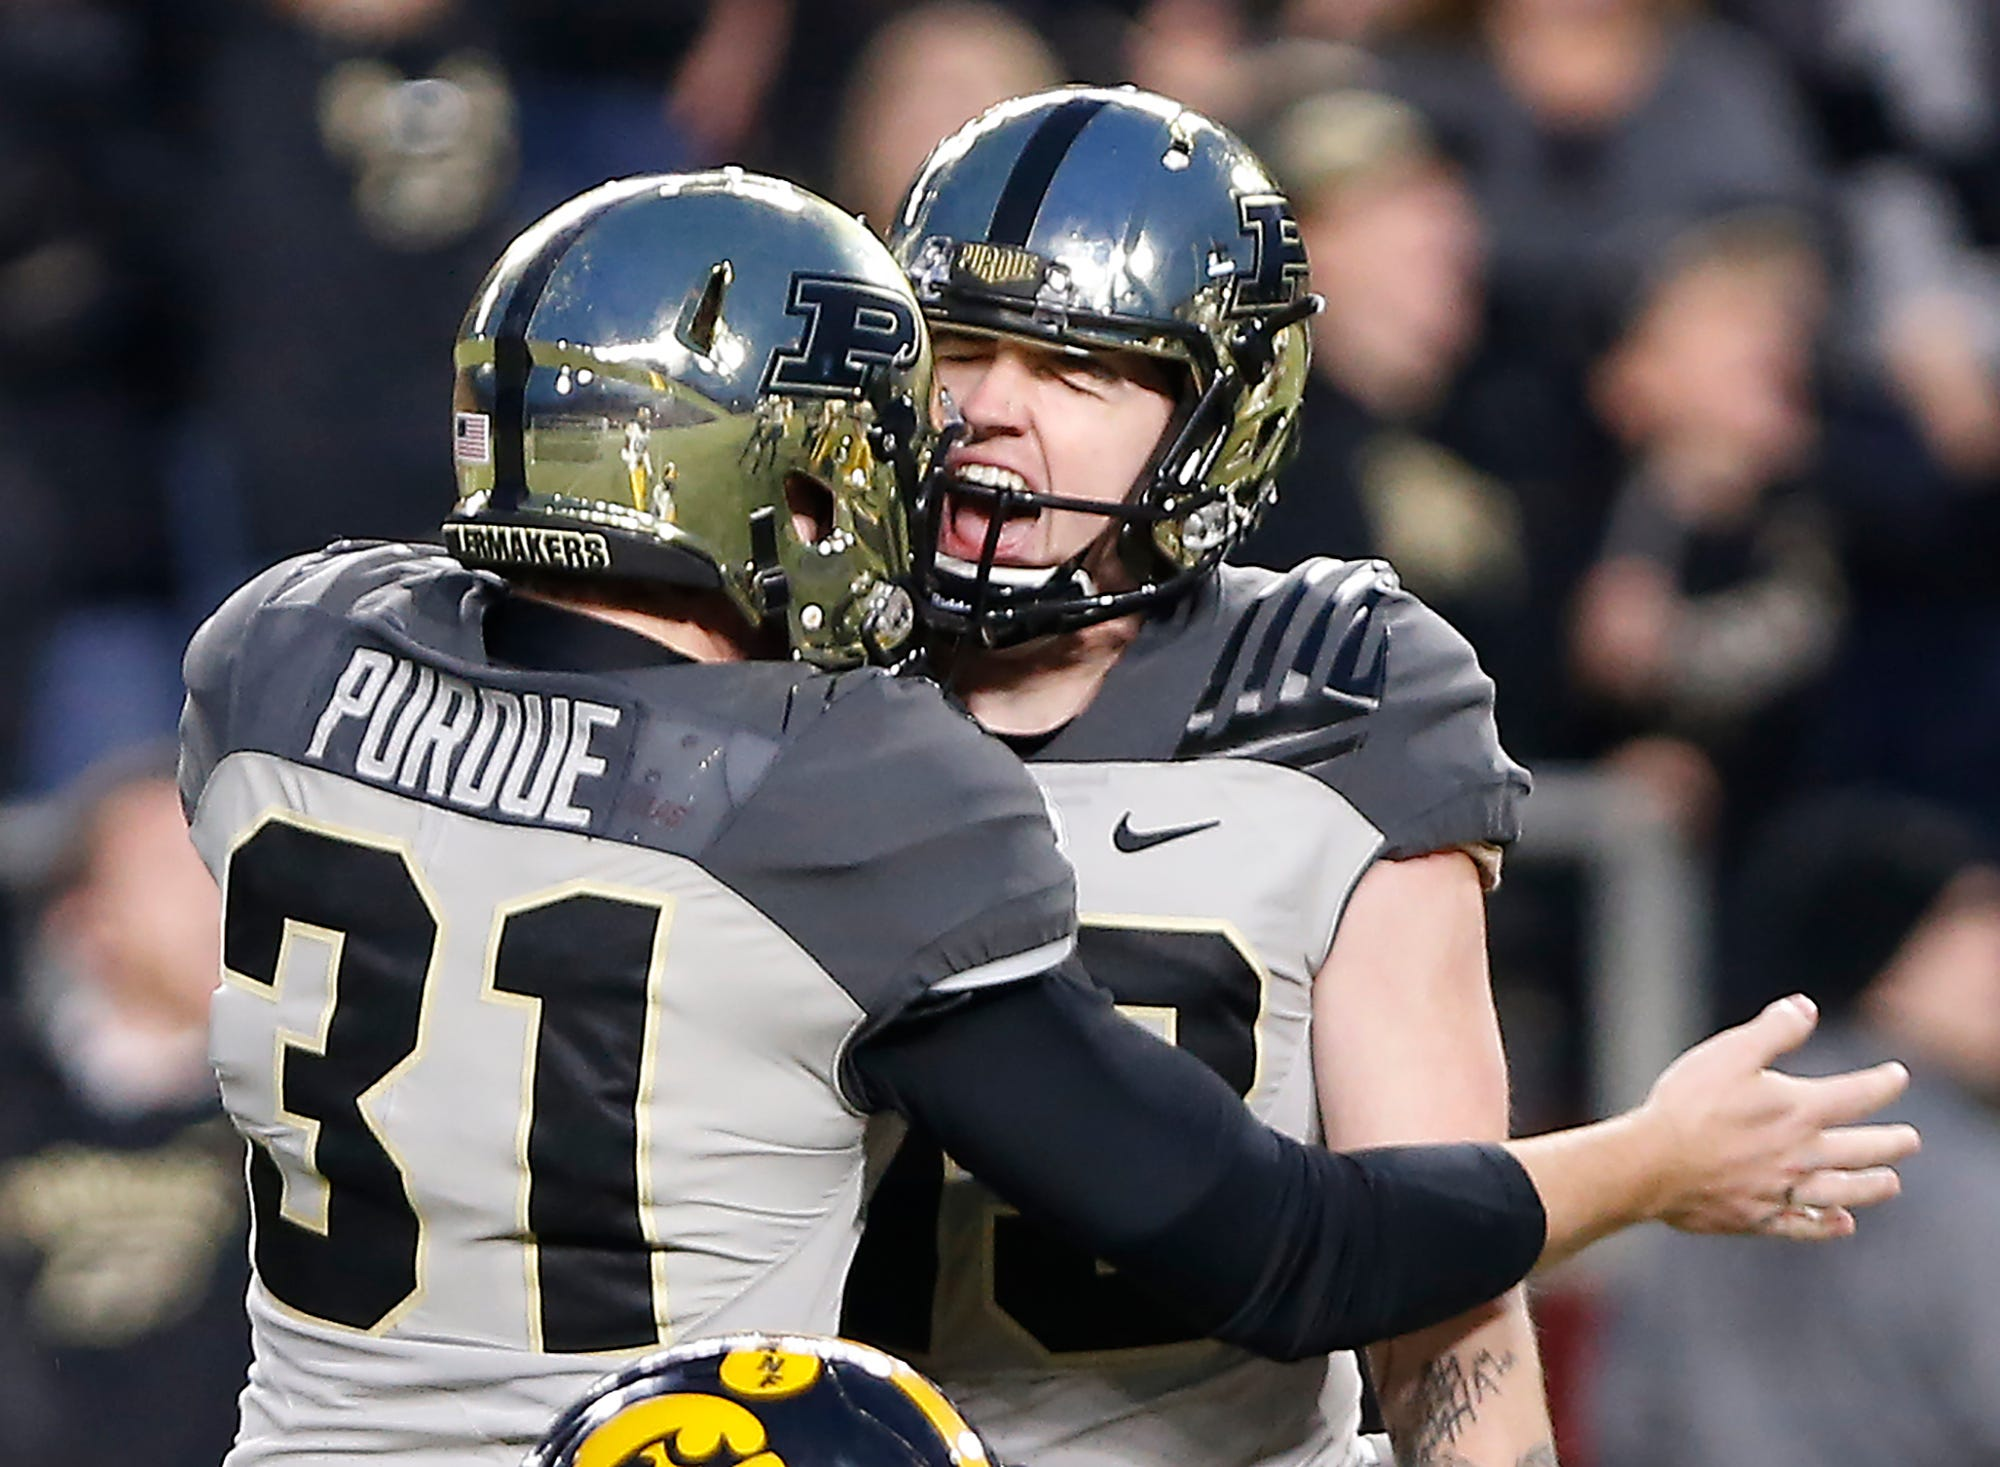 Purdue kicker Spencer Evans, right, celebrates with Joe Schopper after his field goal put the Boilermakers up 38-36 over Iowa Saturday, November 3, 2018, at Ross-Ade Stadium.